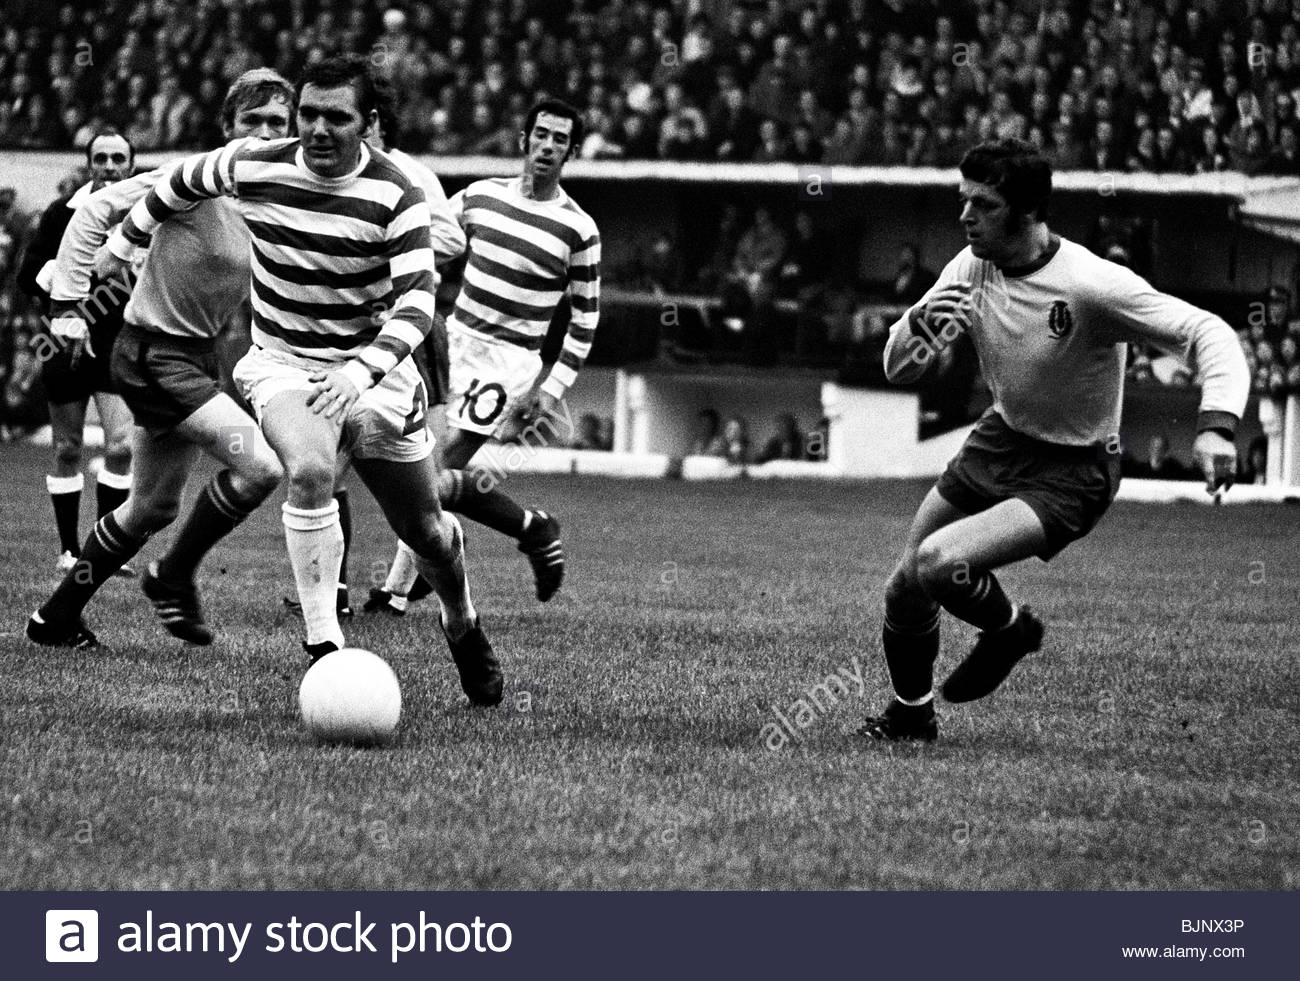 23/10/71 LEAGUE CUP FINAL CELTIC V PARTICK THISTLE (1-4) HAMPDEN - GLASGOW Bobby Murdoch (4) breaks clear for Celtic. - Stock Image